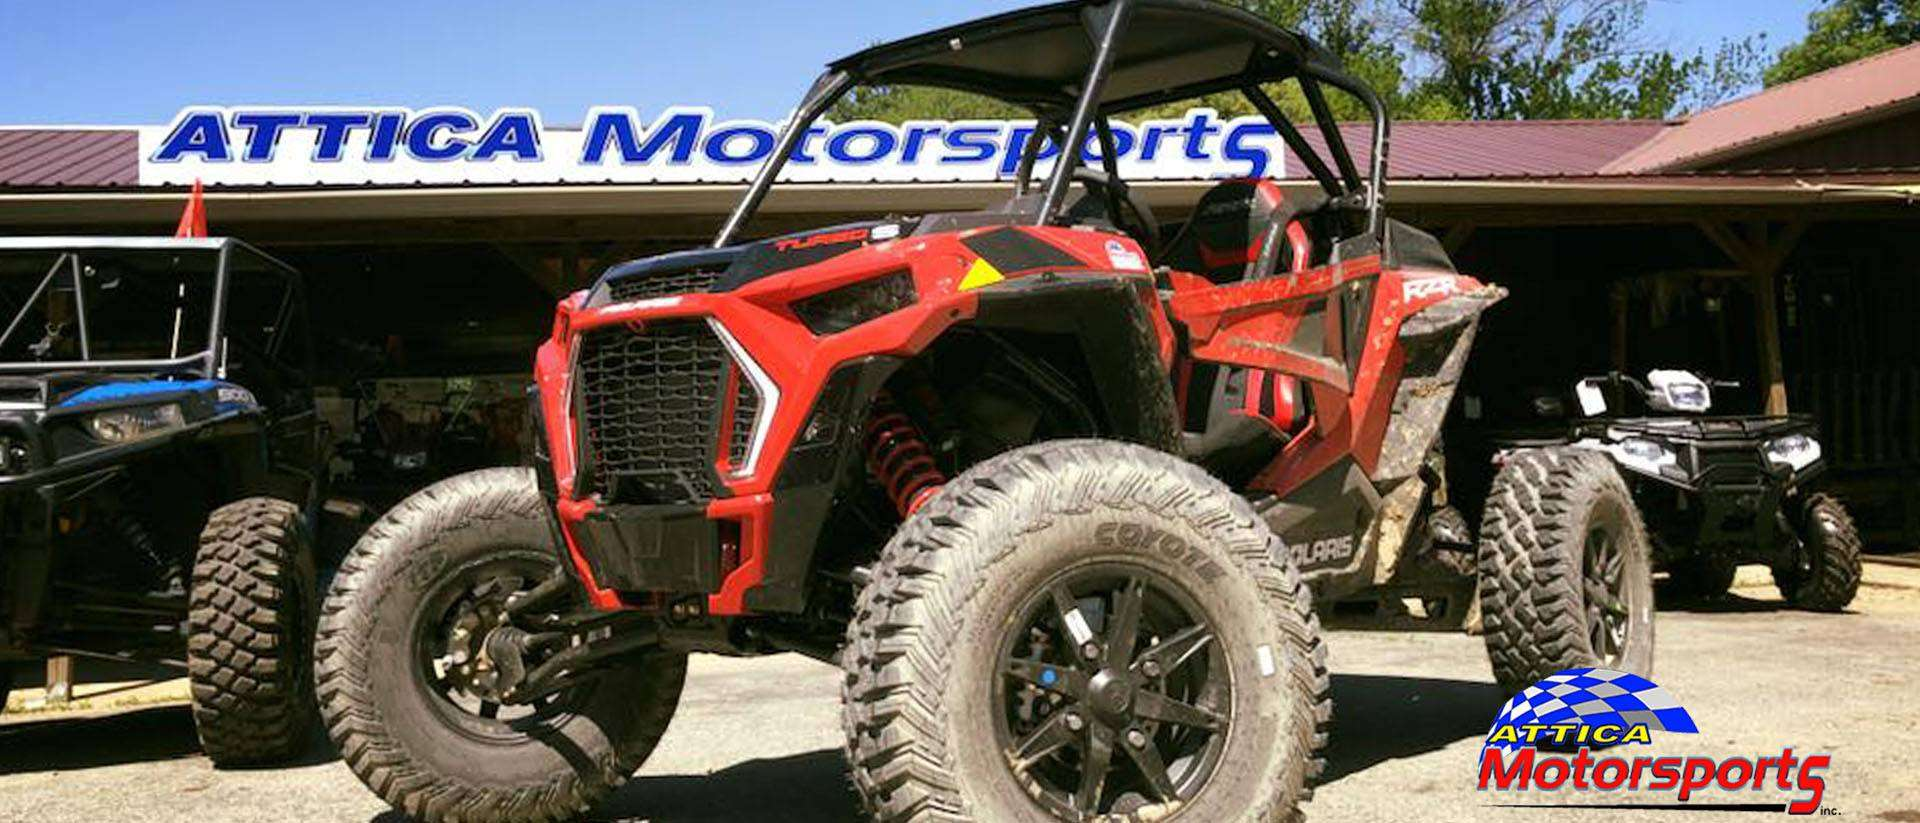 Attica Motorsports is located at Badlands Off Road Park in Attica, IN